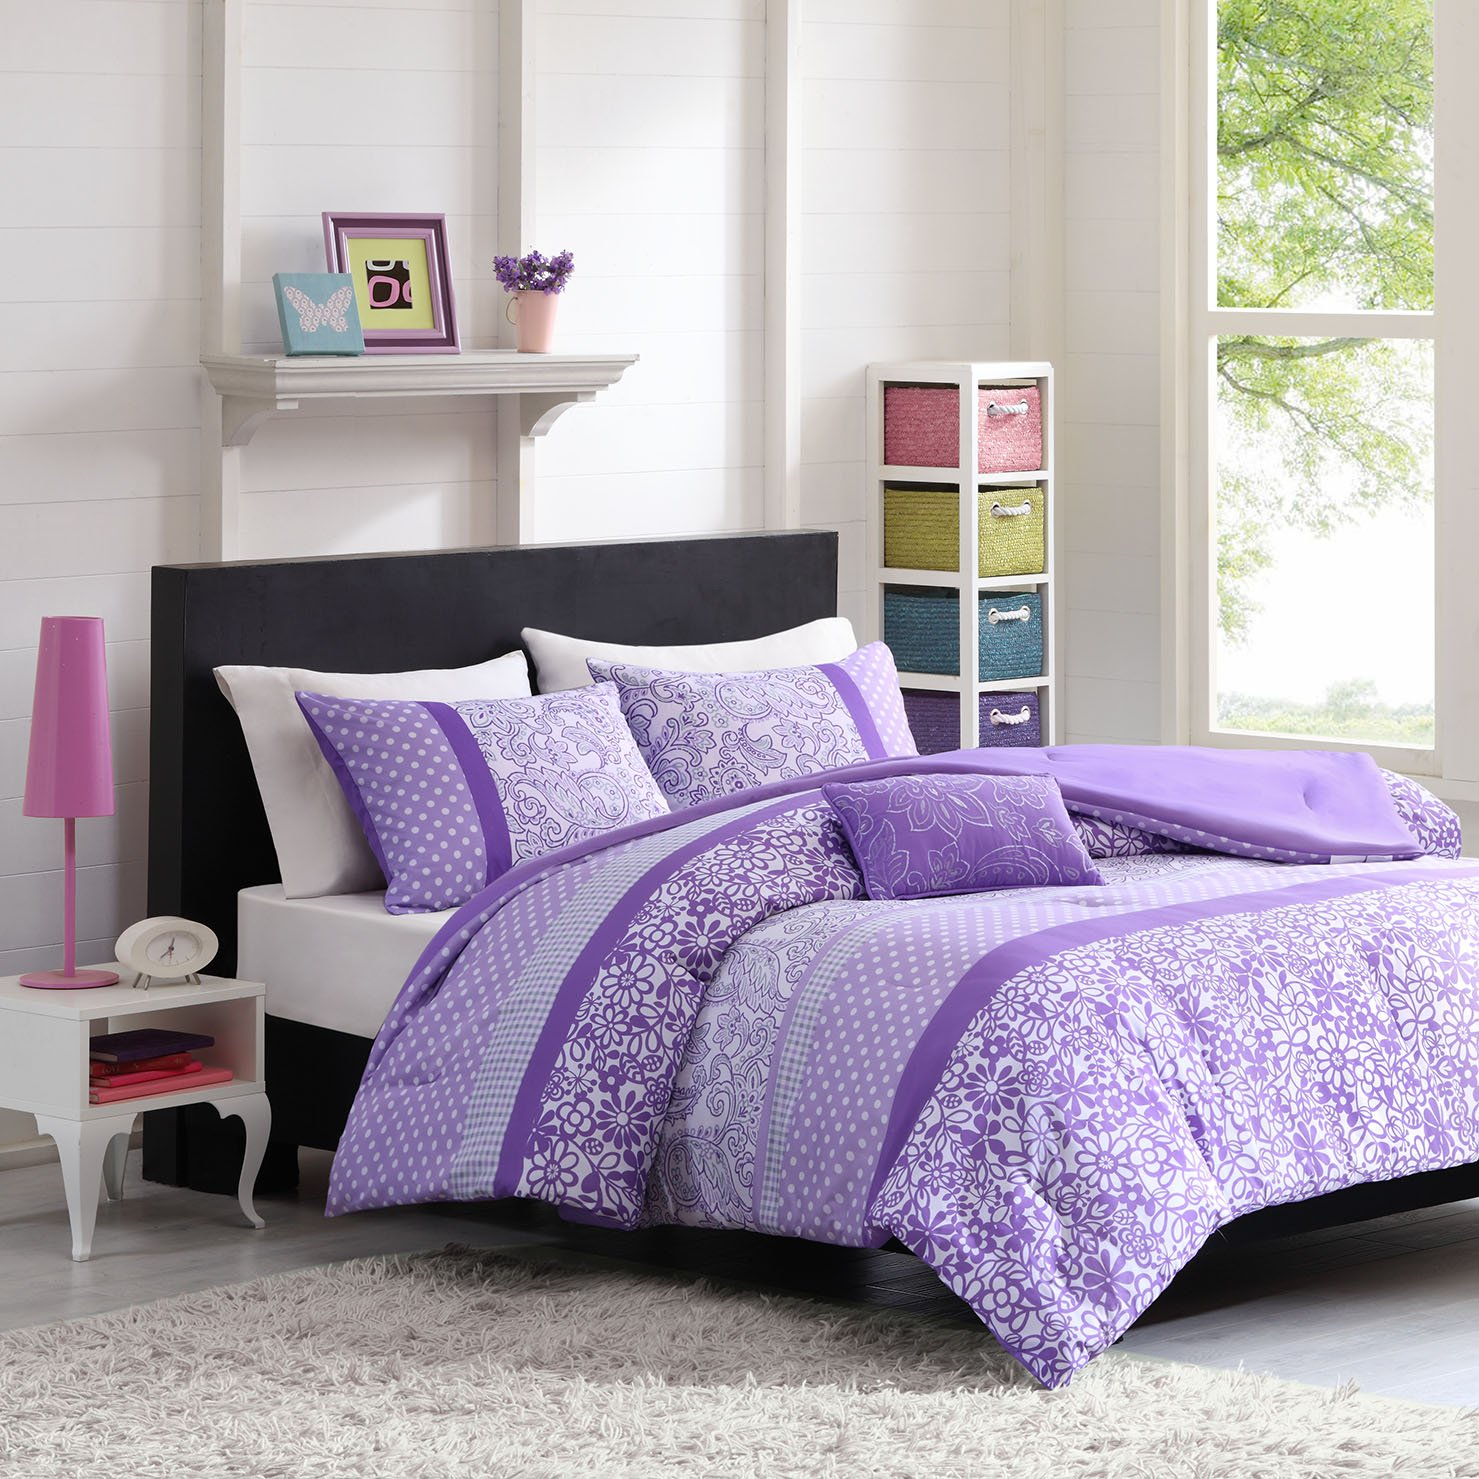 design at kohls in teen curtain kids double sequin of childrens pink boy covers boys and ideas size sets bedroom duvets target bag for duvet neon queen girls comforter junior kid full cute teenage child girl comforters twin bedding bedspreads set